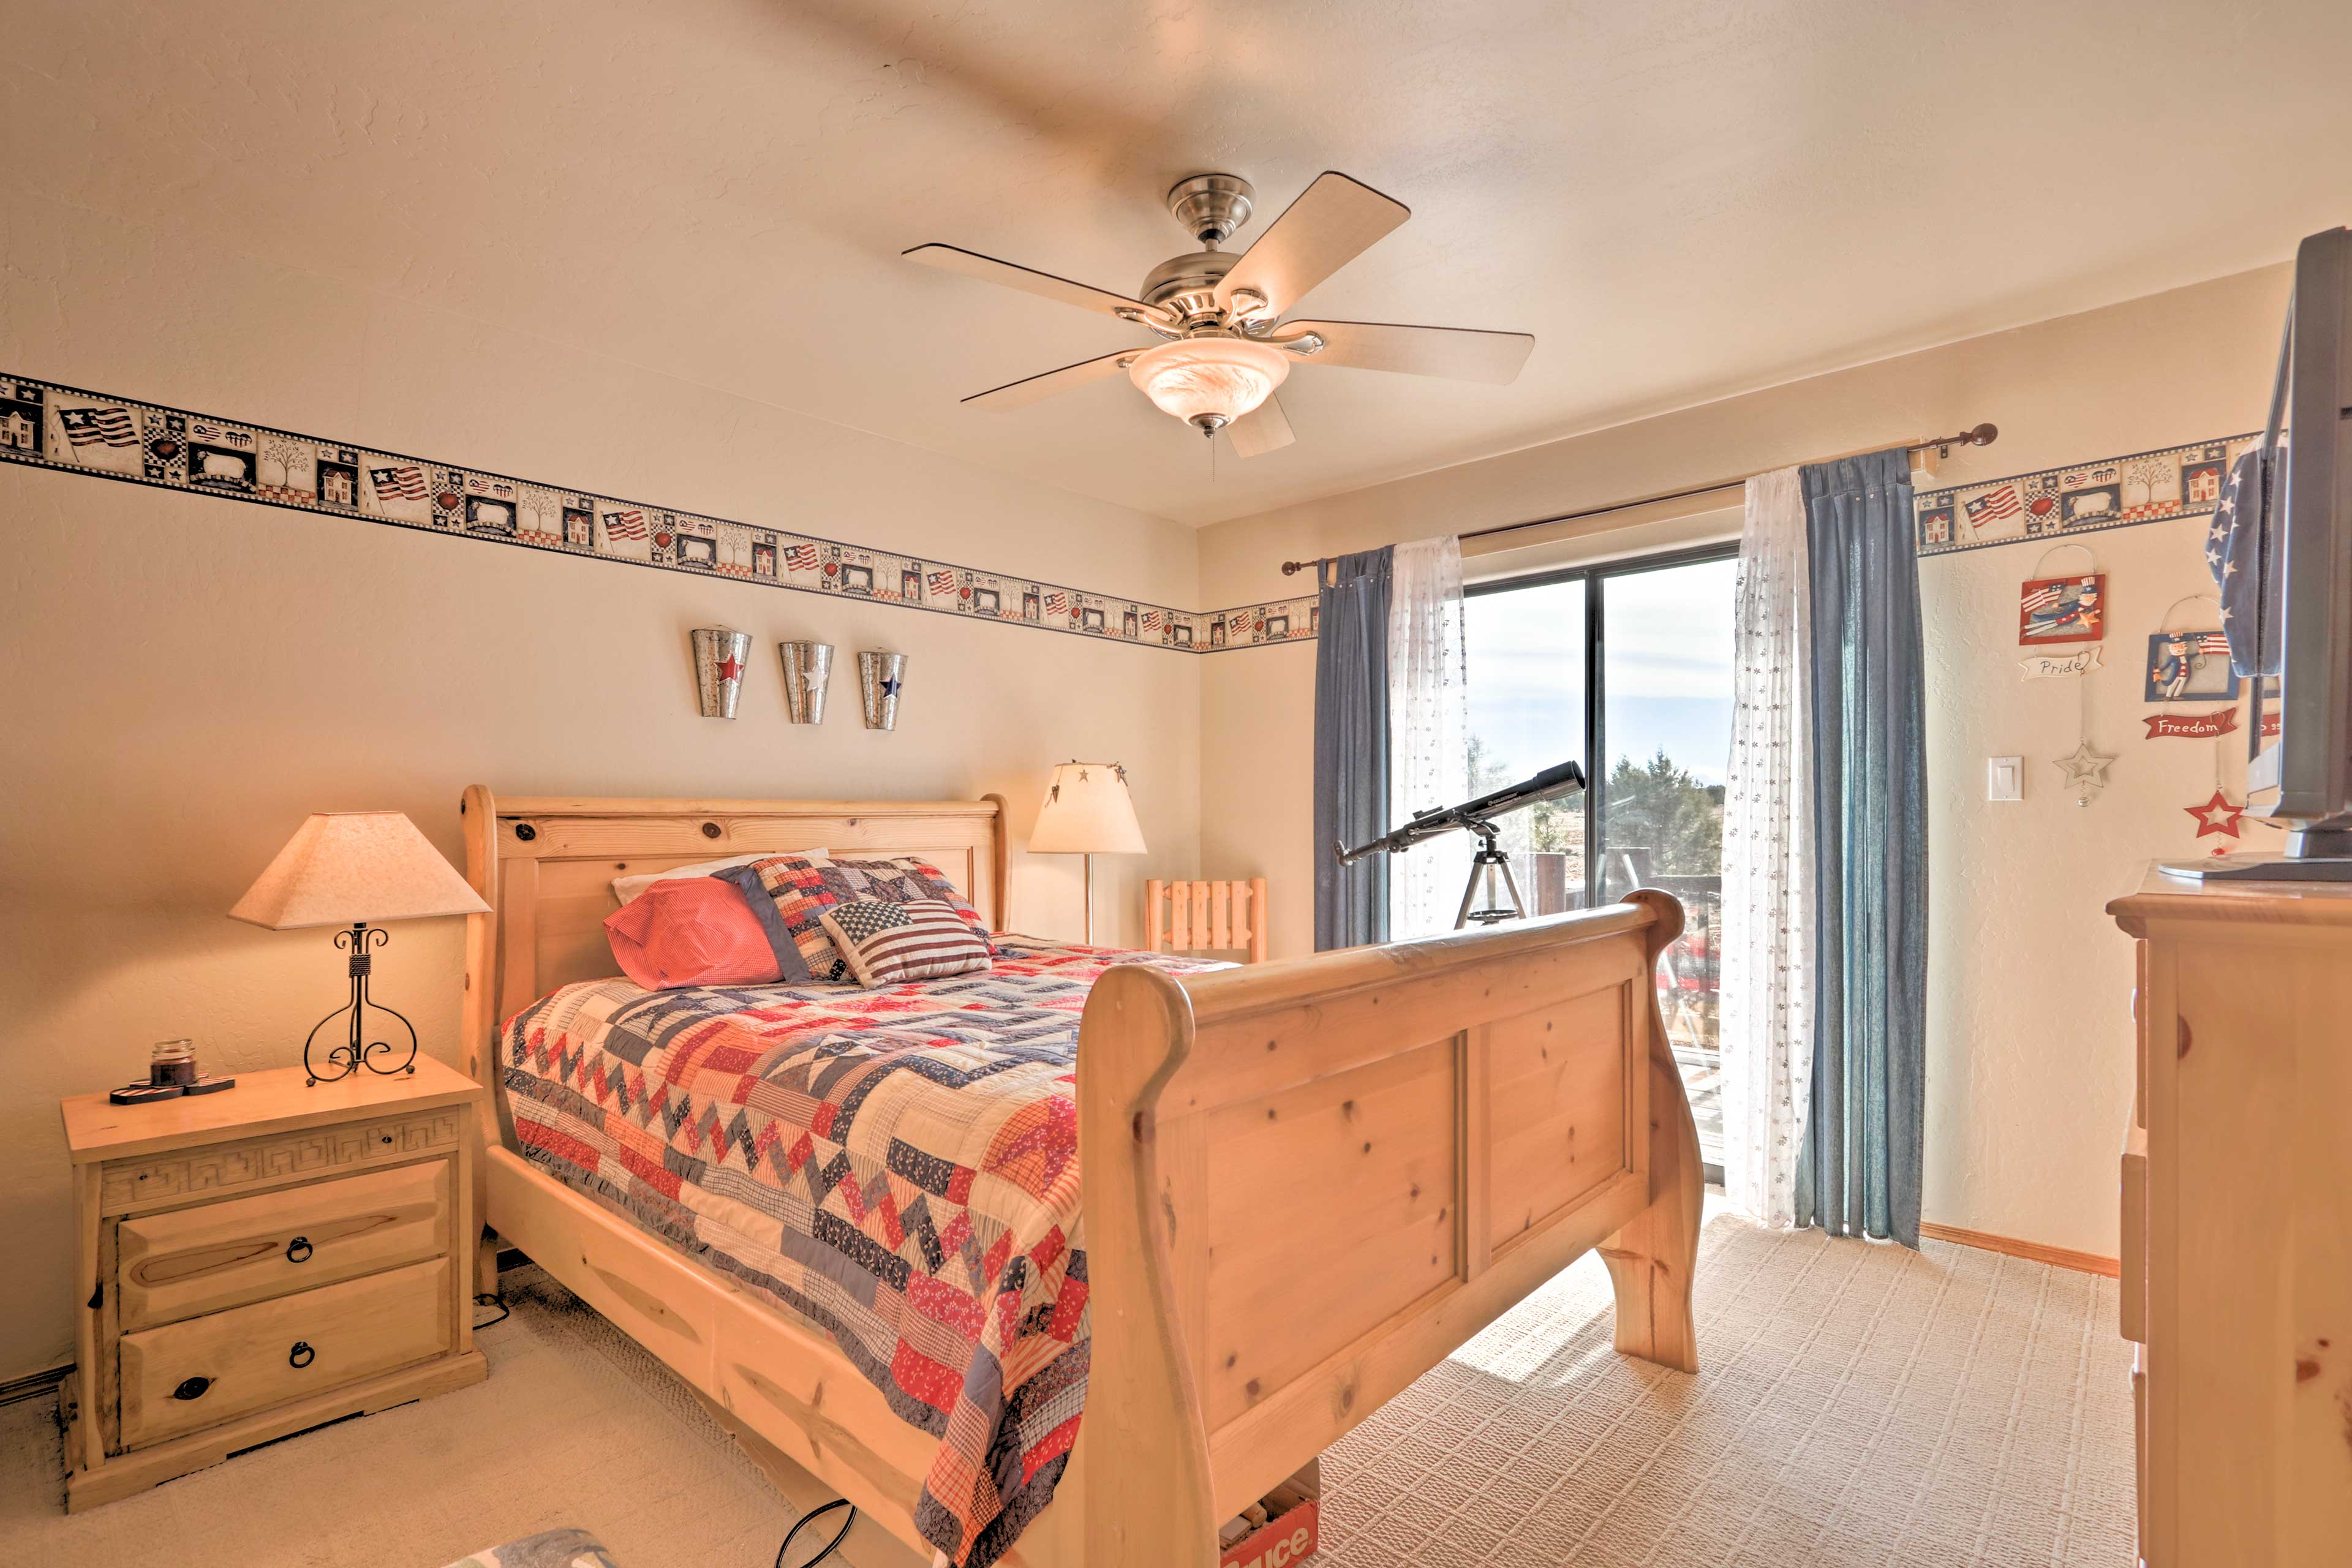 The master bedroom hosts a queen bed and a telescope for evening stargazing!